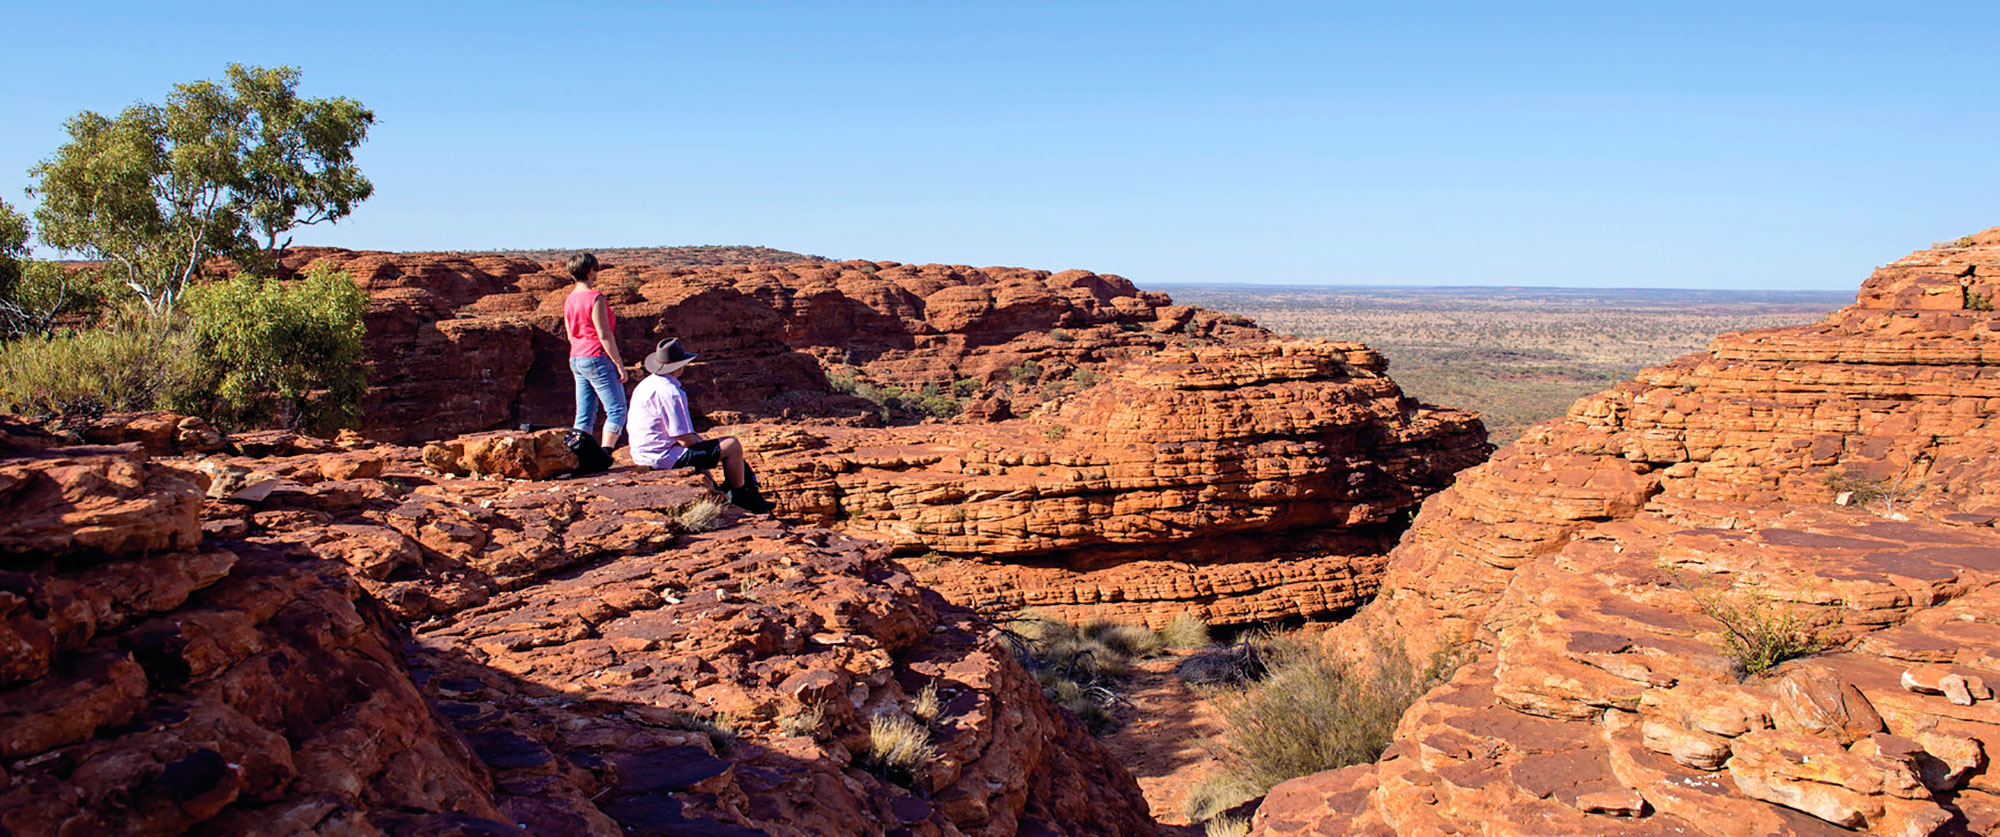 Australia Outback Adventure Vacation